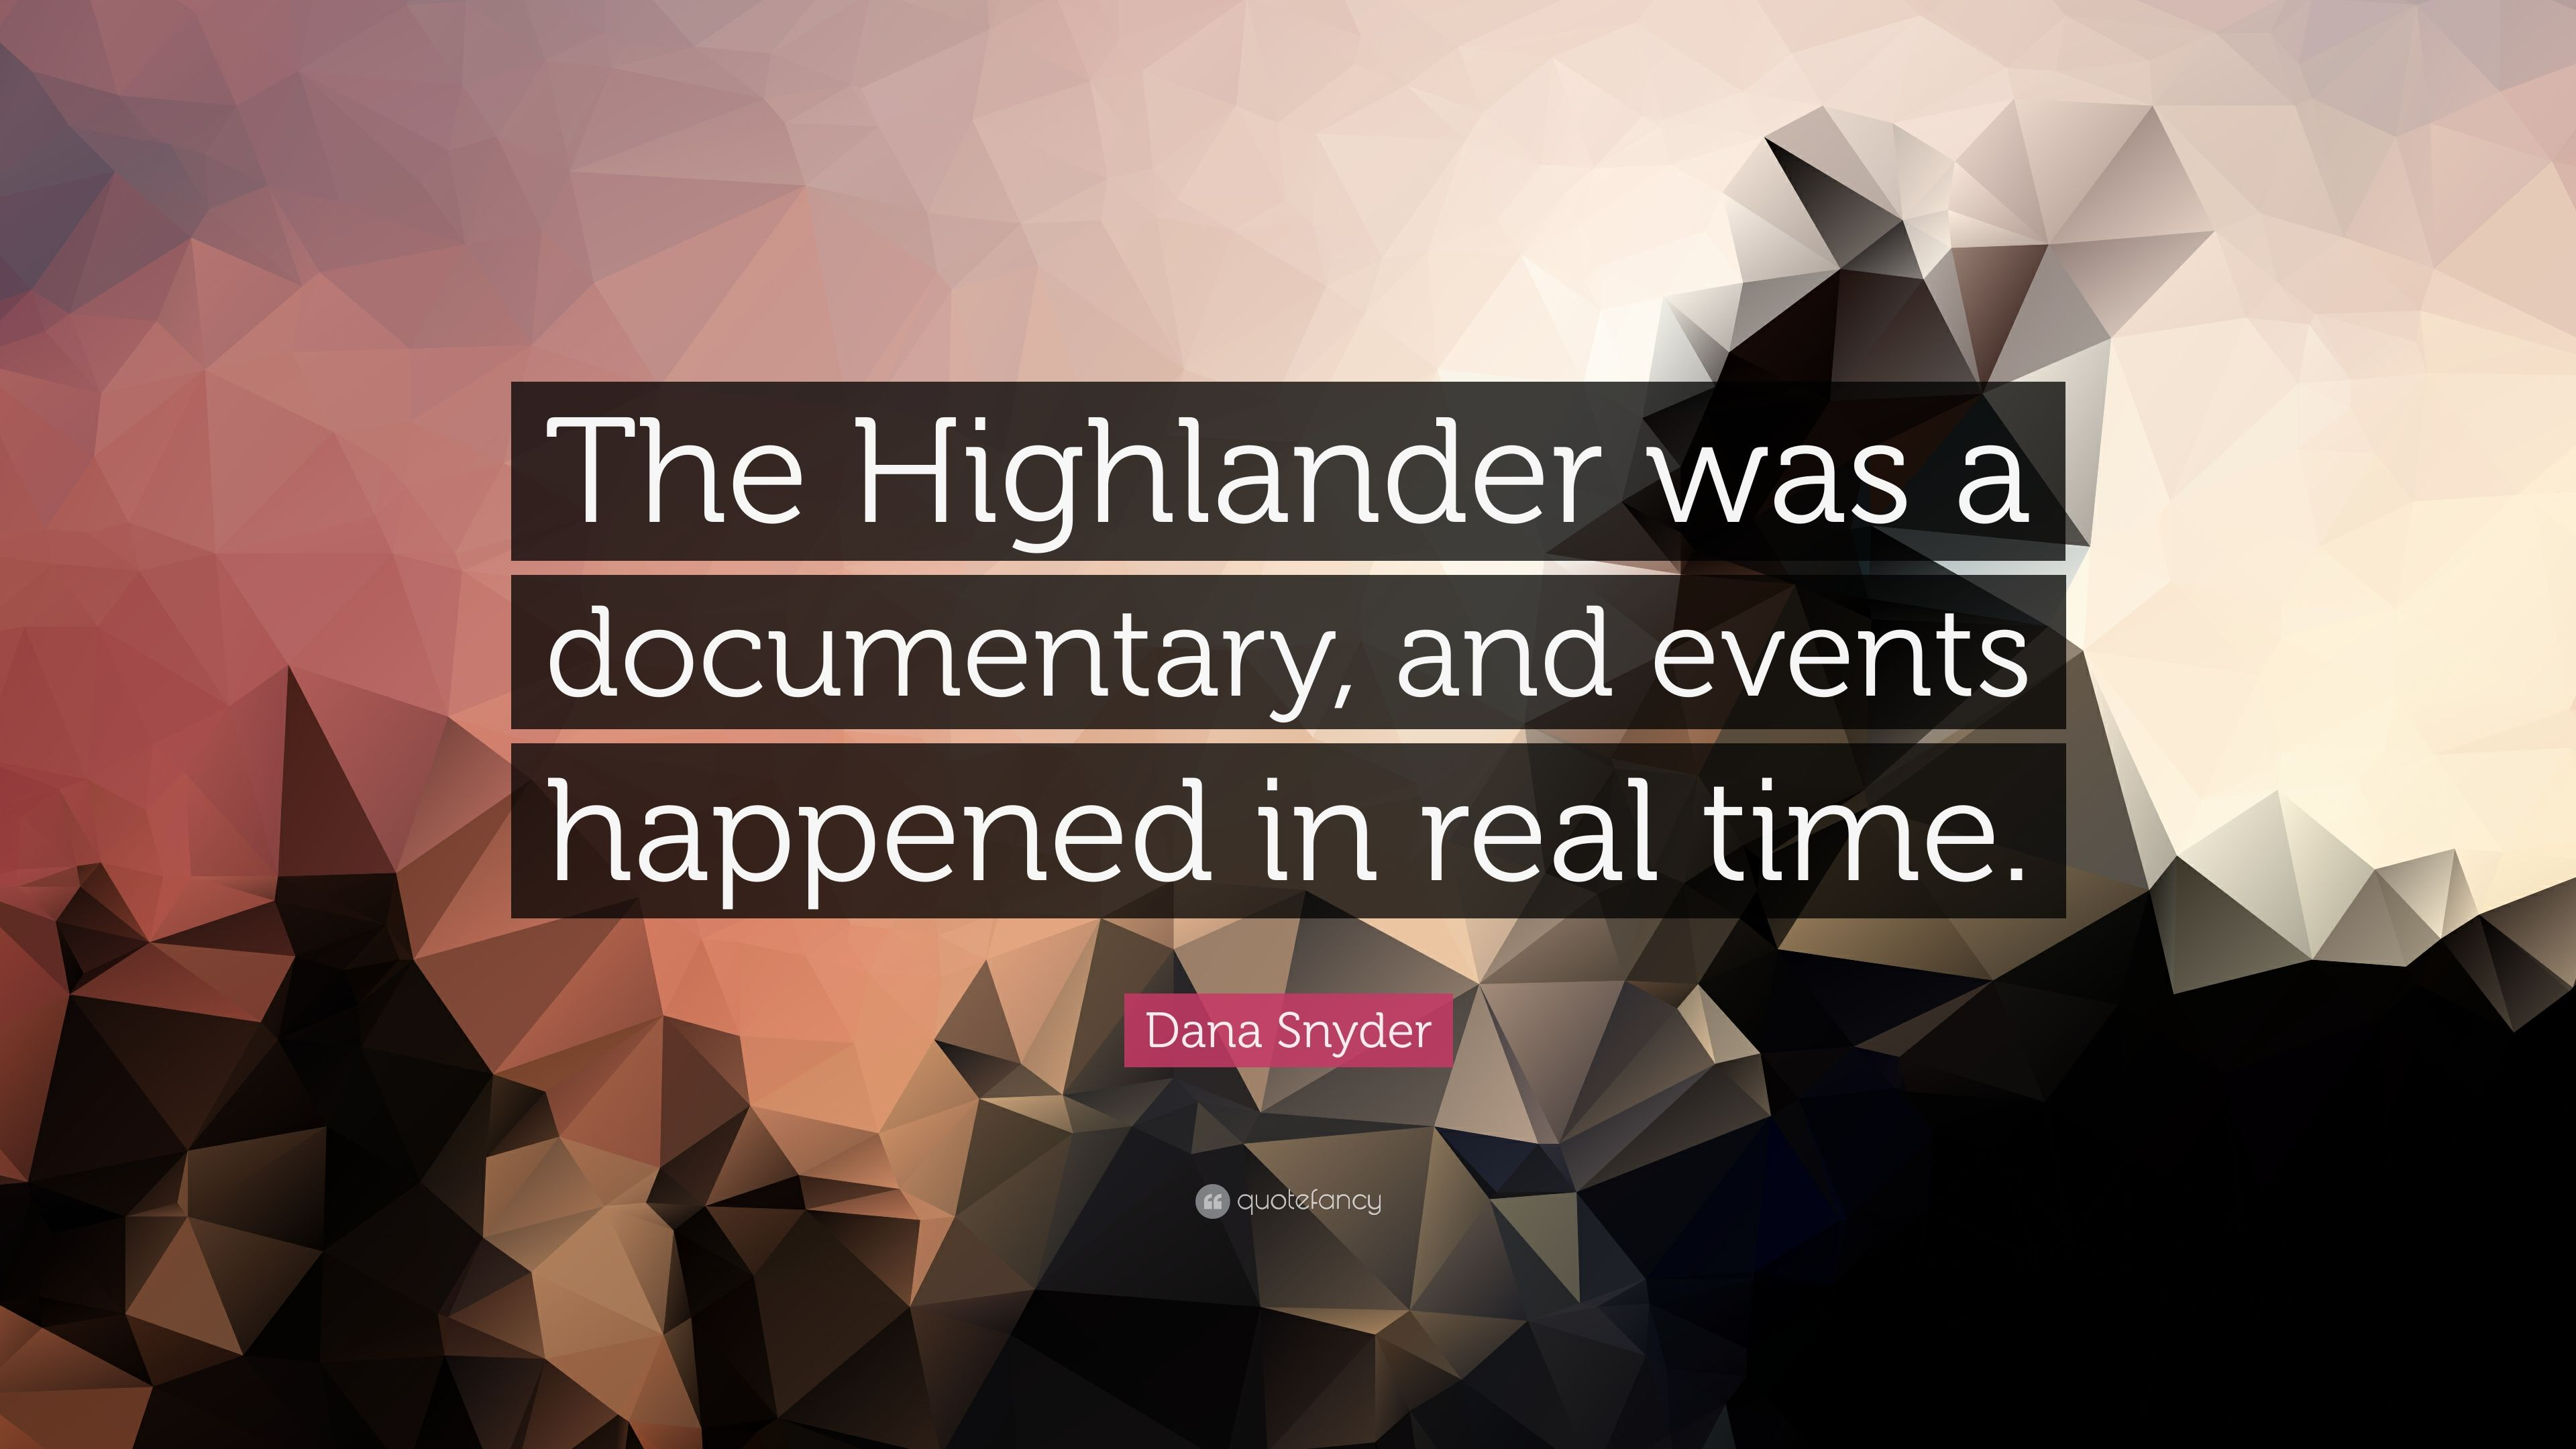 Highlander Quotes Highlander Quotes Adorable Immortal Highlander Quotes Like Success